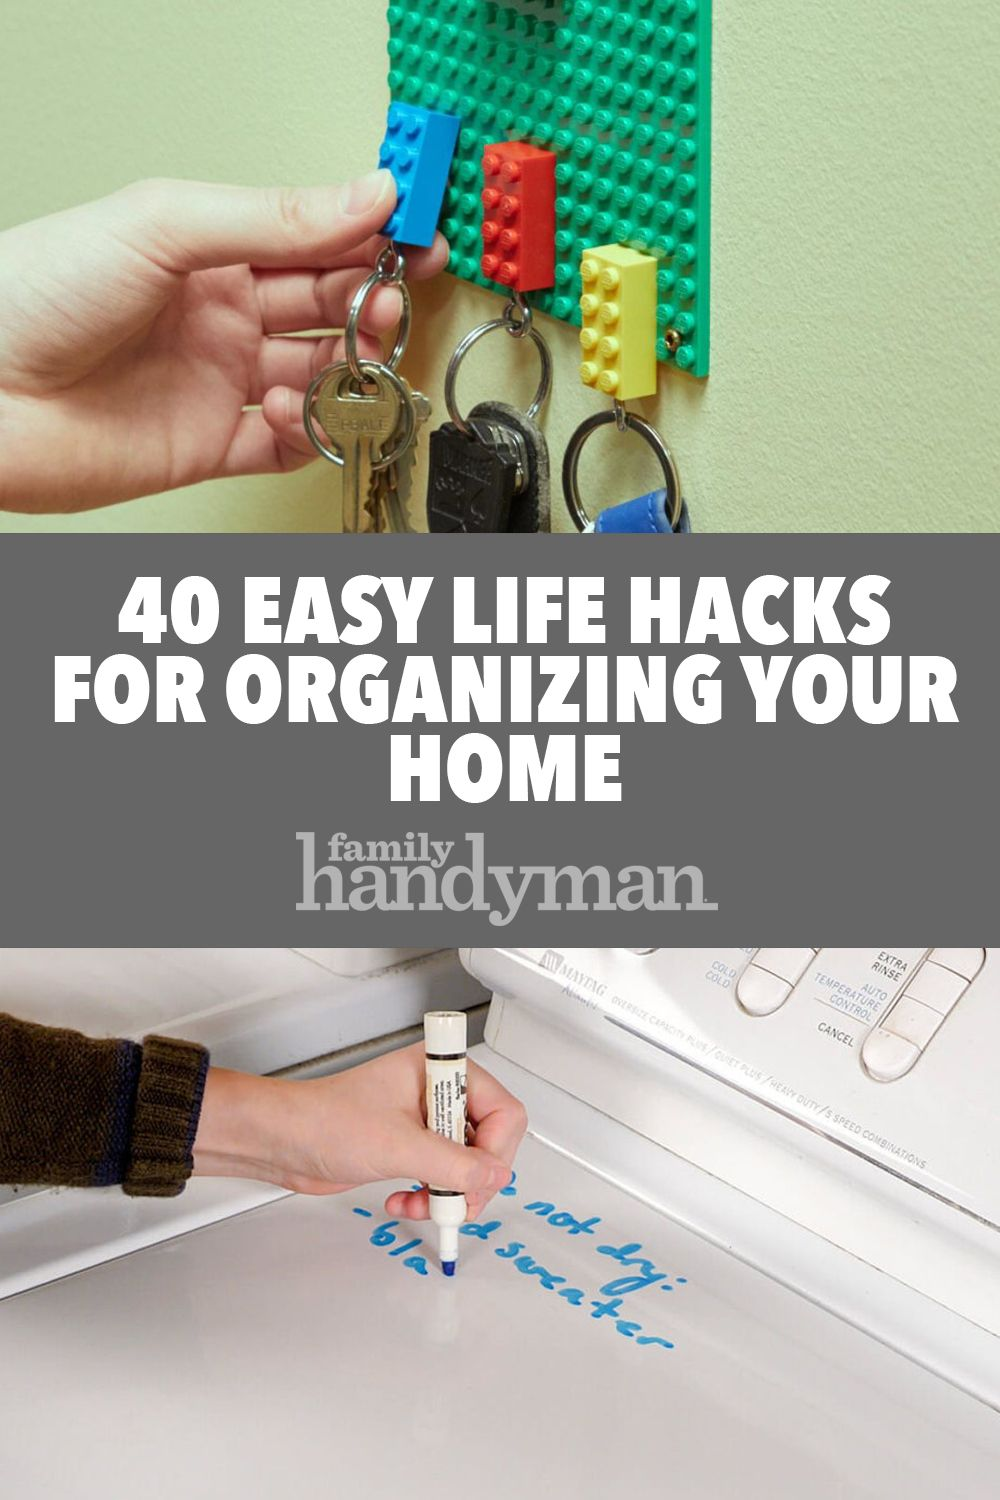 40 Easy Life Hacks For Organizing Your Home Life Hacks Organization Simple Life Hacks Organizing Your Home